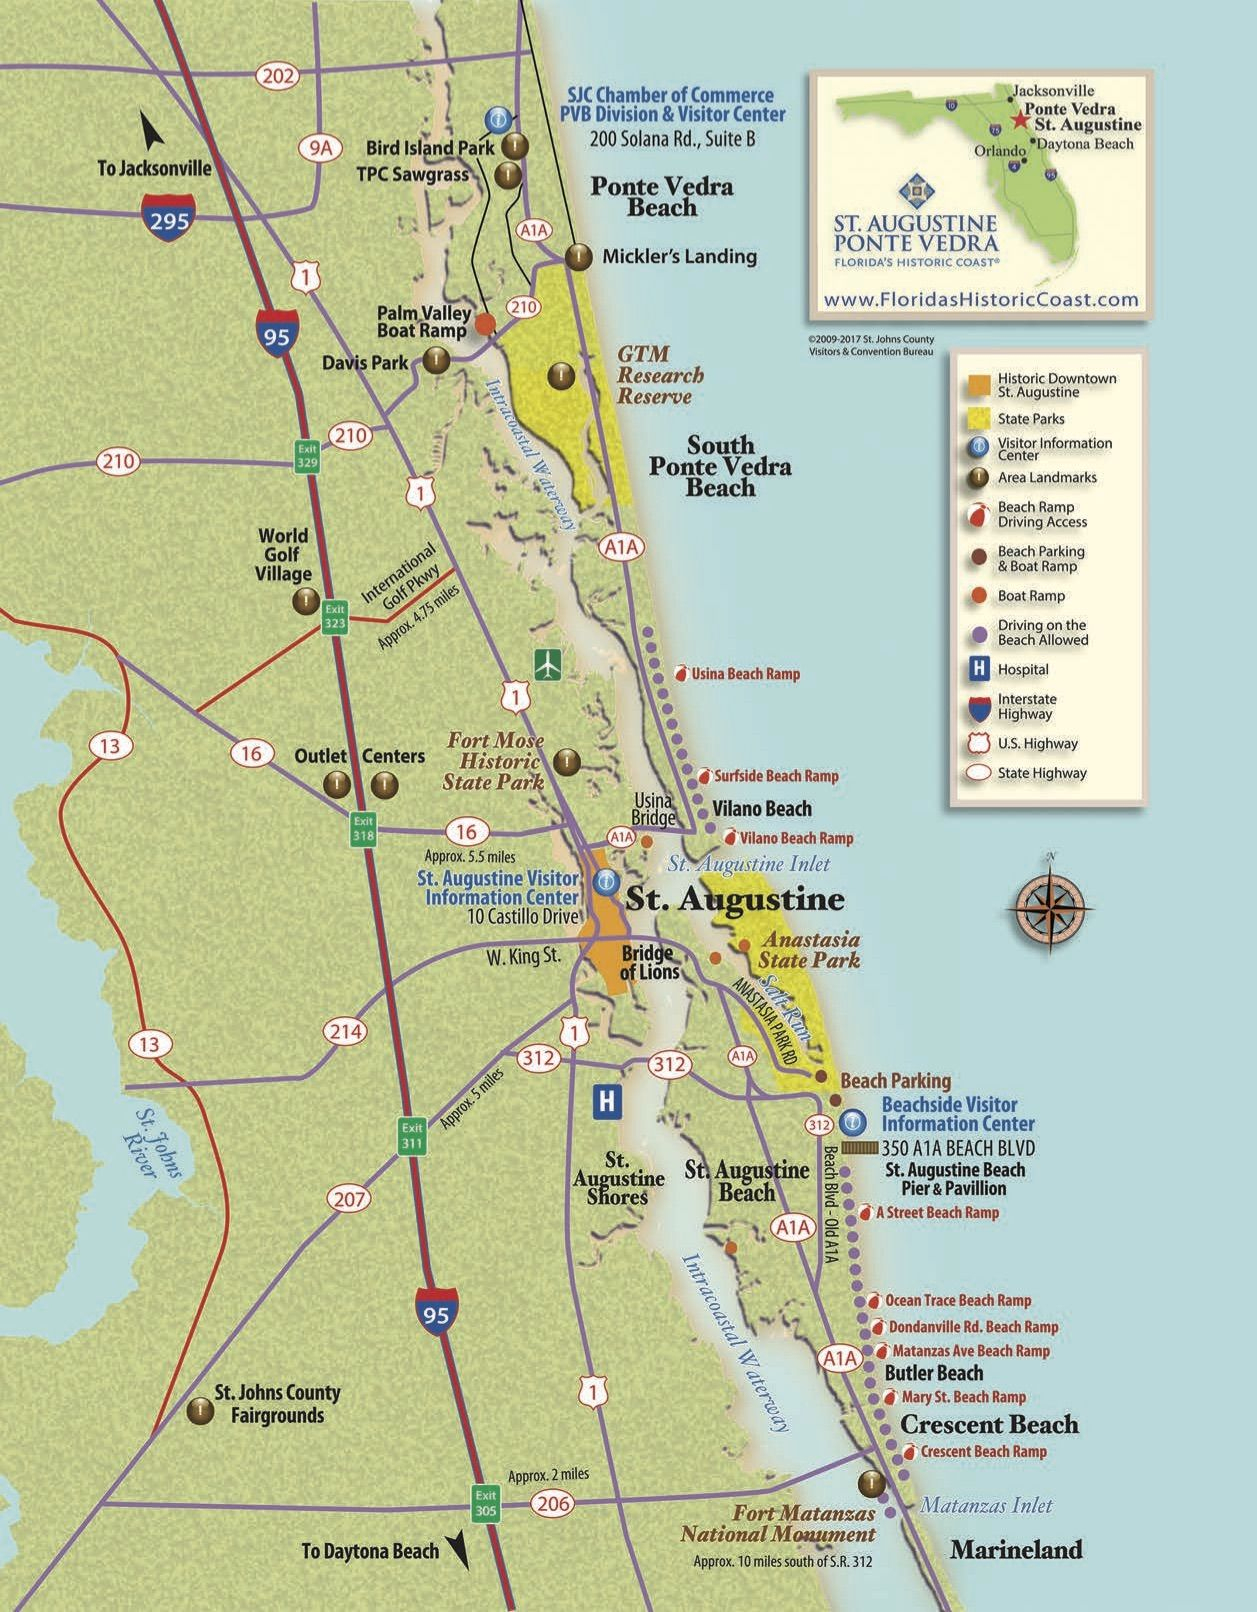 View St. Augustine Maps To Familiarize Yourself With St. Augustine - St Augustine Florida Map